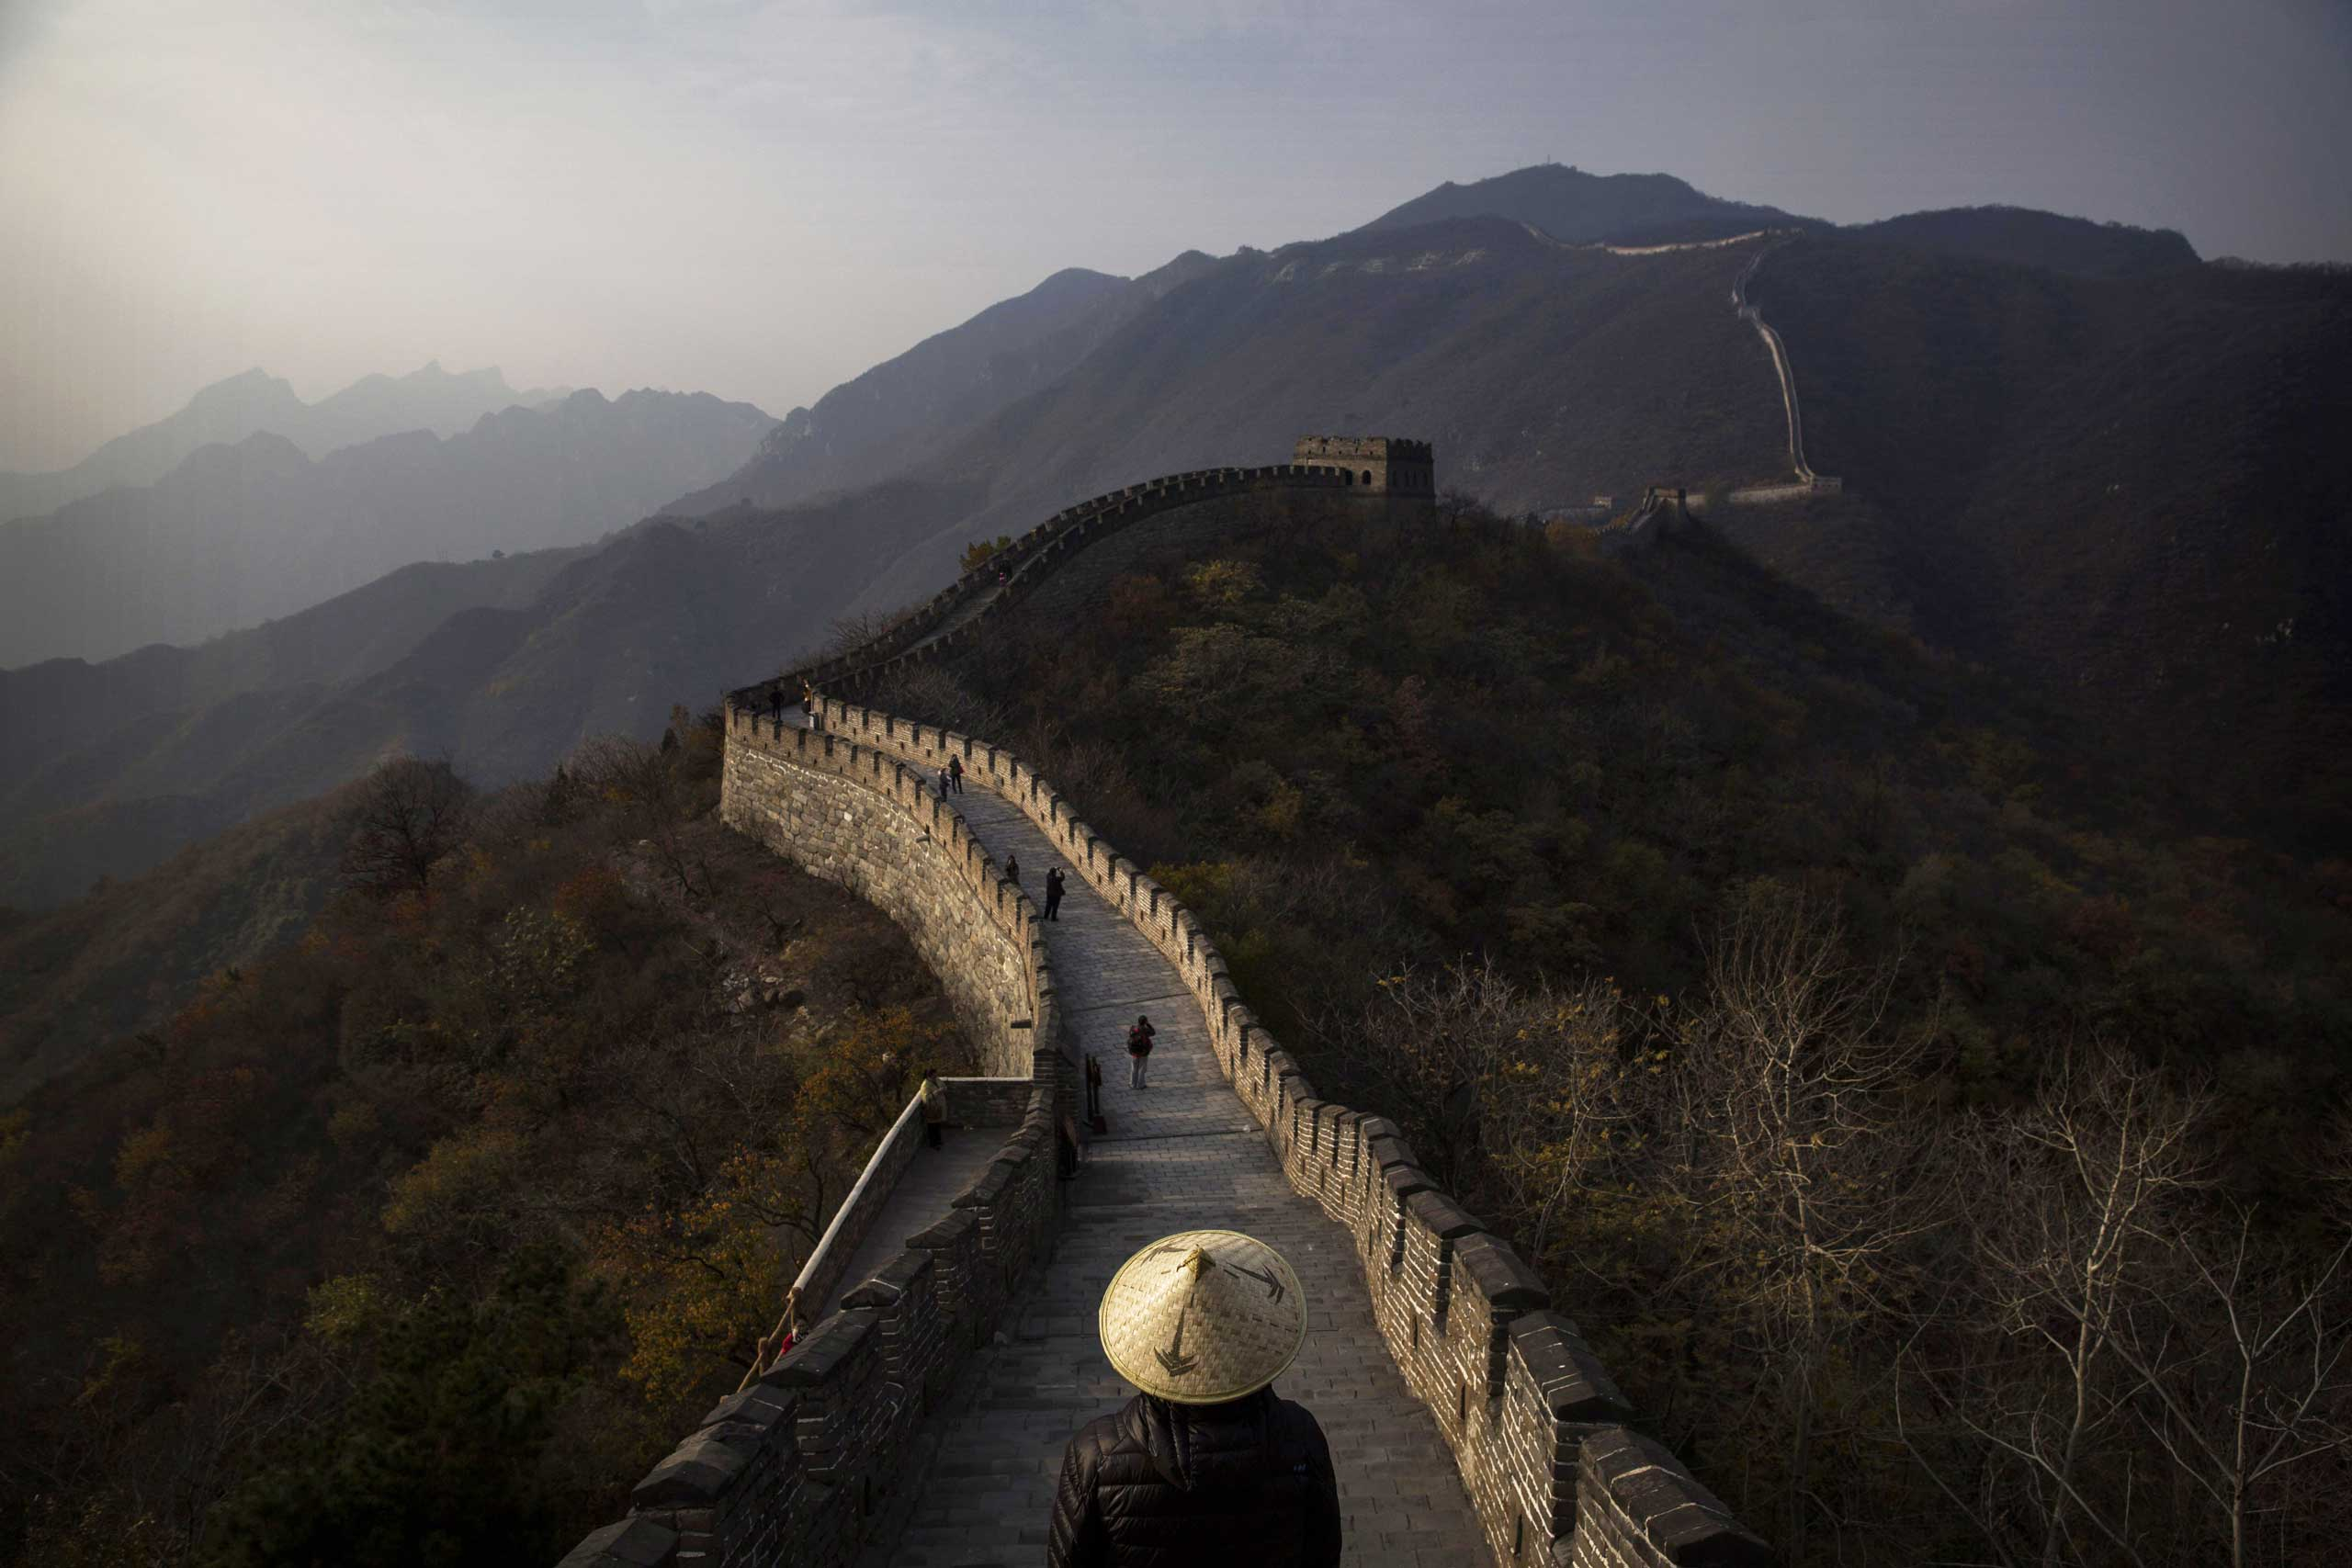 Oct. 28, 2014. Chinese and foreign tourists walk on a section of the Great Wall of China in Mutianyu, near Beijing.